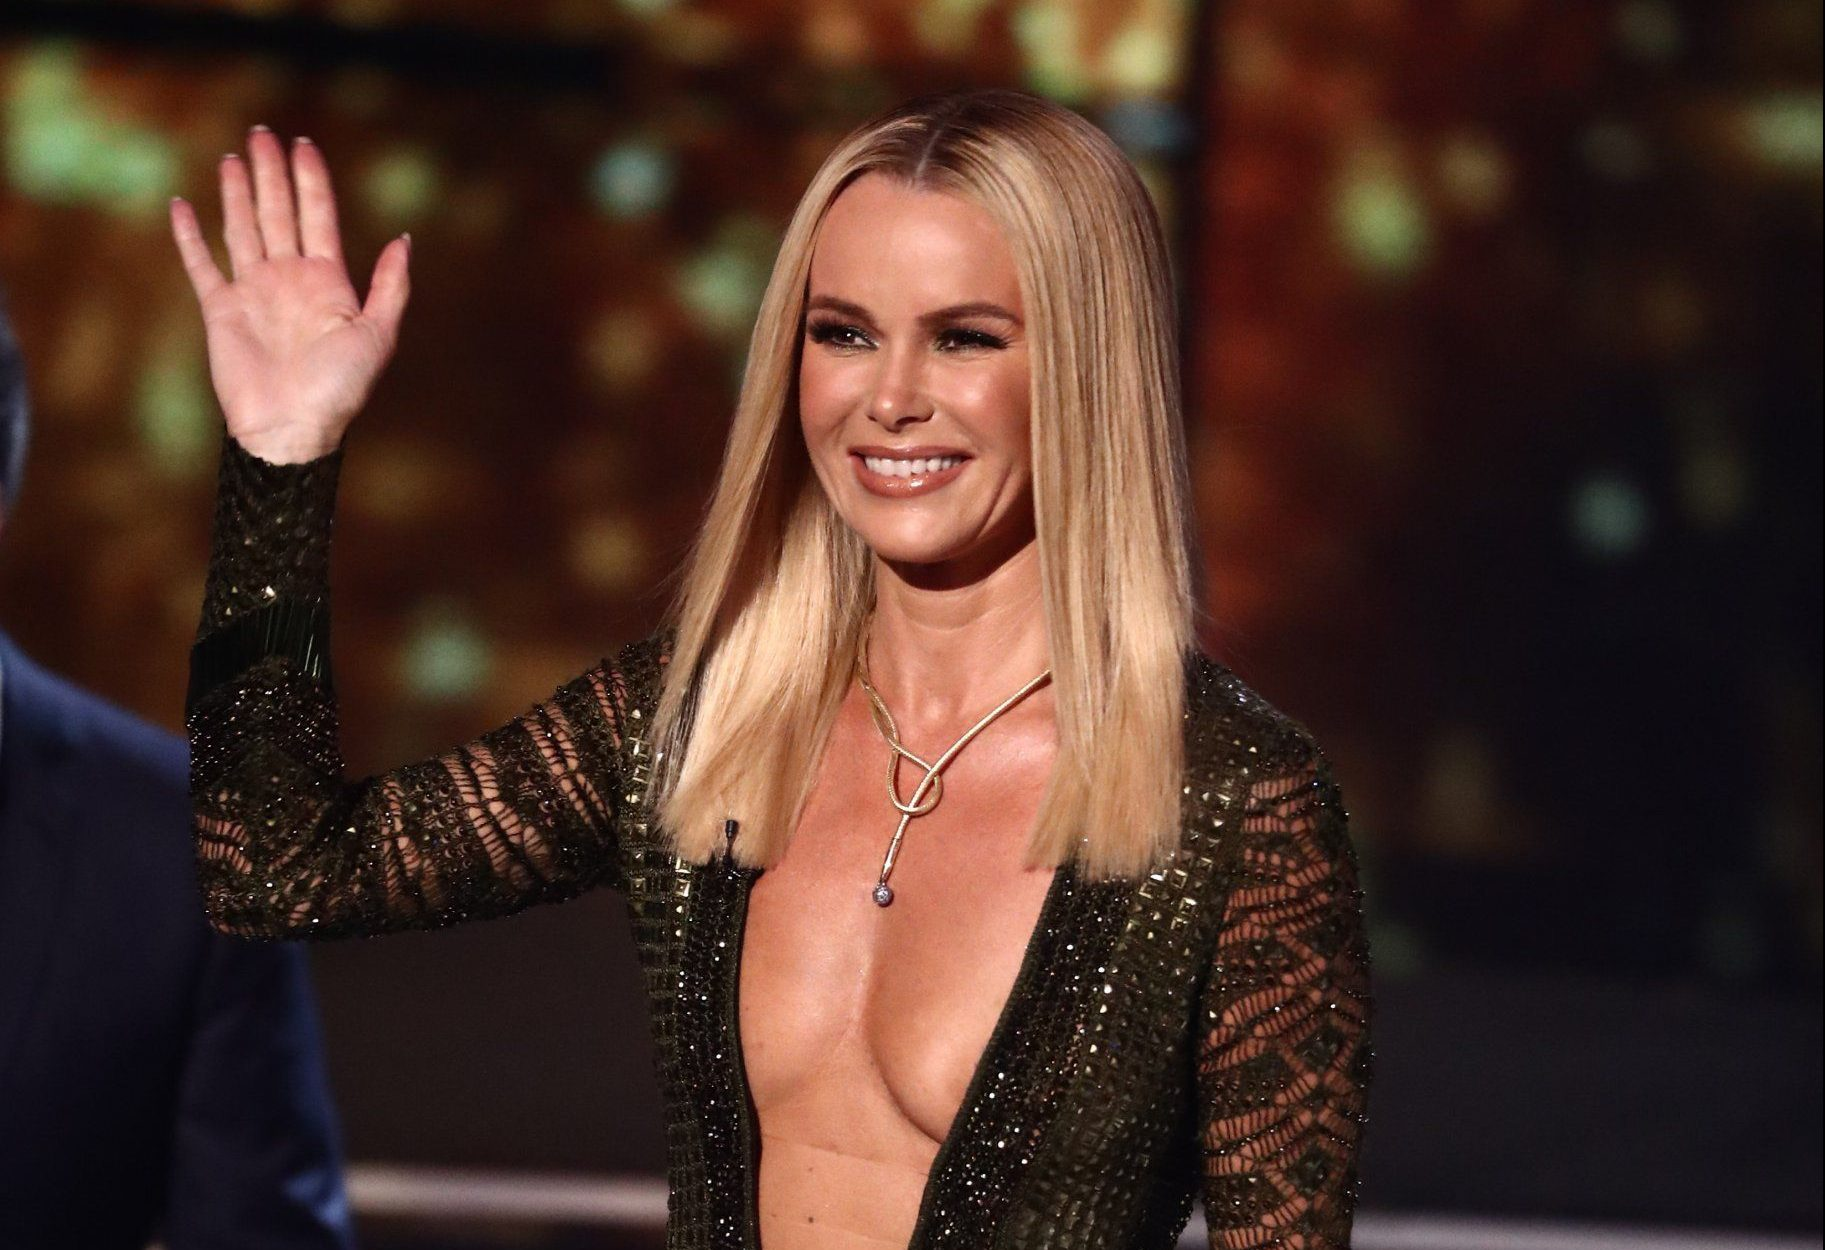 Britain's Got Talent Amanda Holden will 'not be covered up' despite criticism over outfits